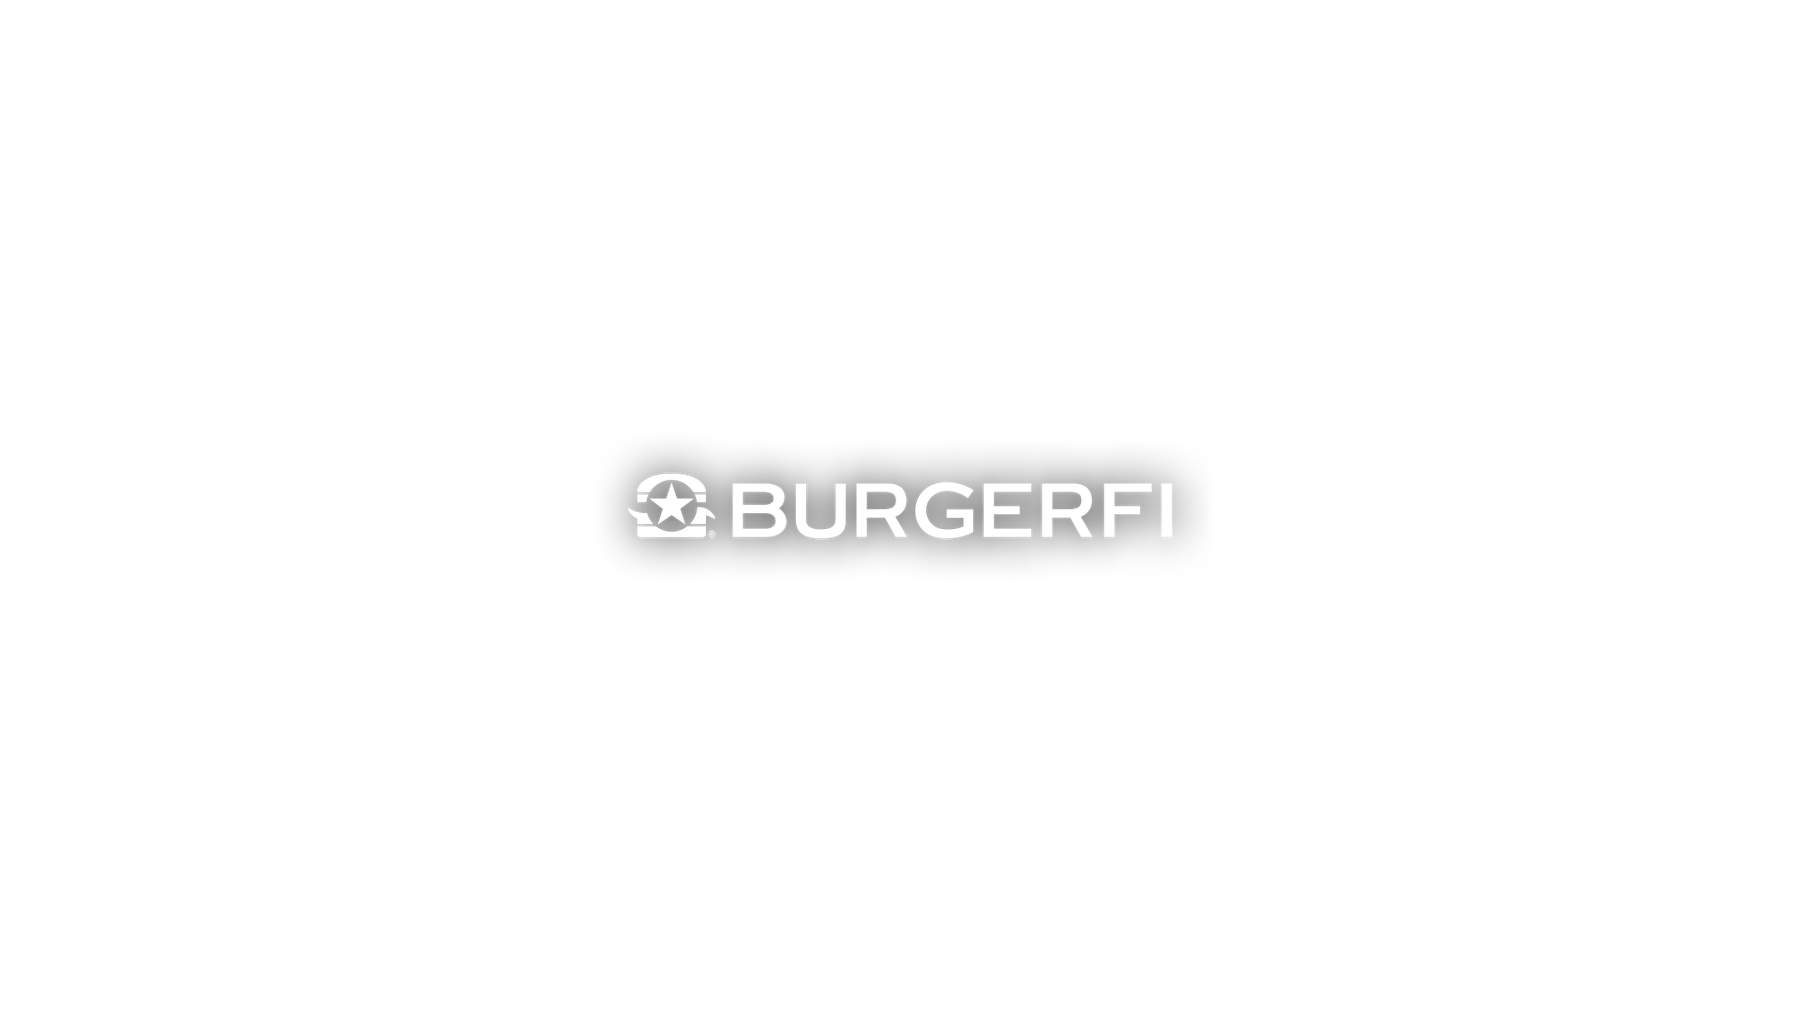 Burgerfi logo center